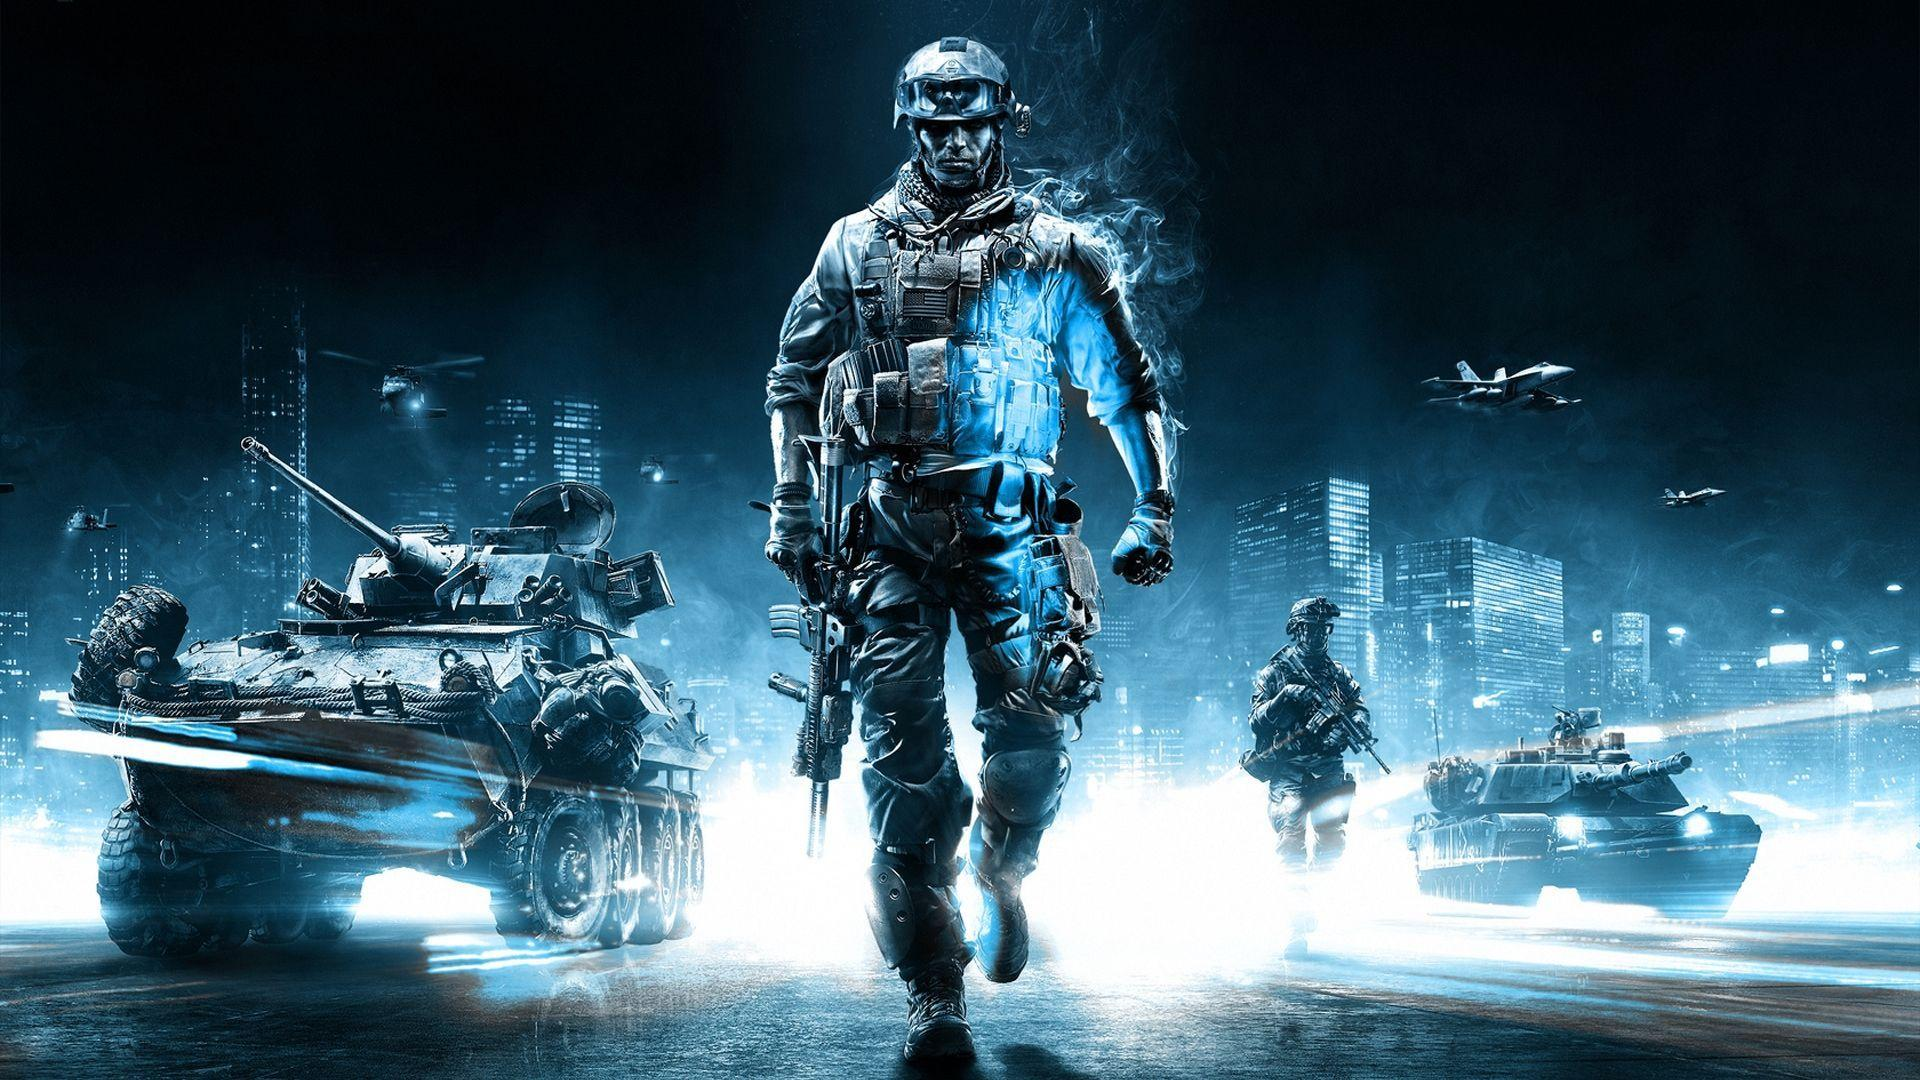 High Resolution Gaming Wallpapers: Amazing PC Games Wallpapers HD Of 2017 Windows 7